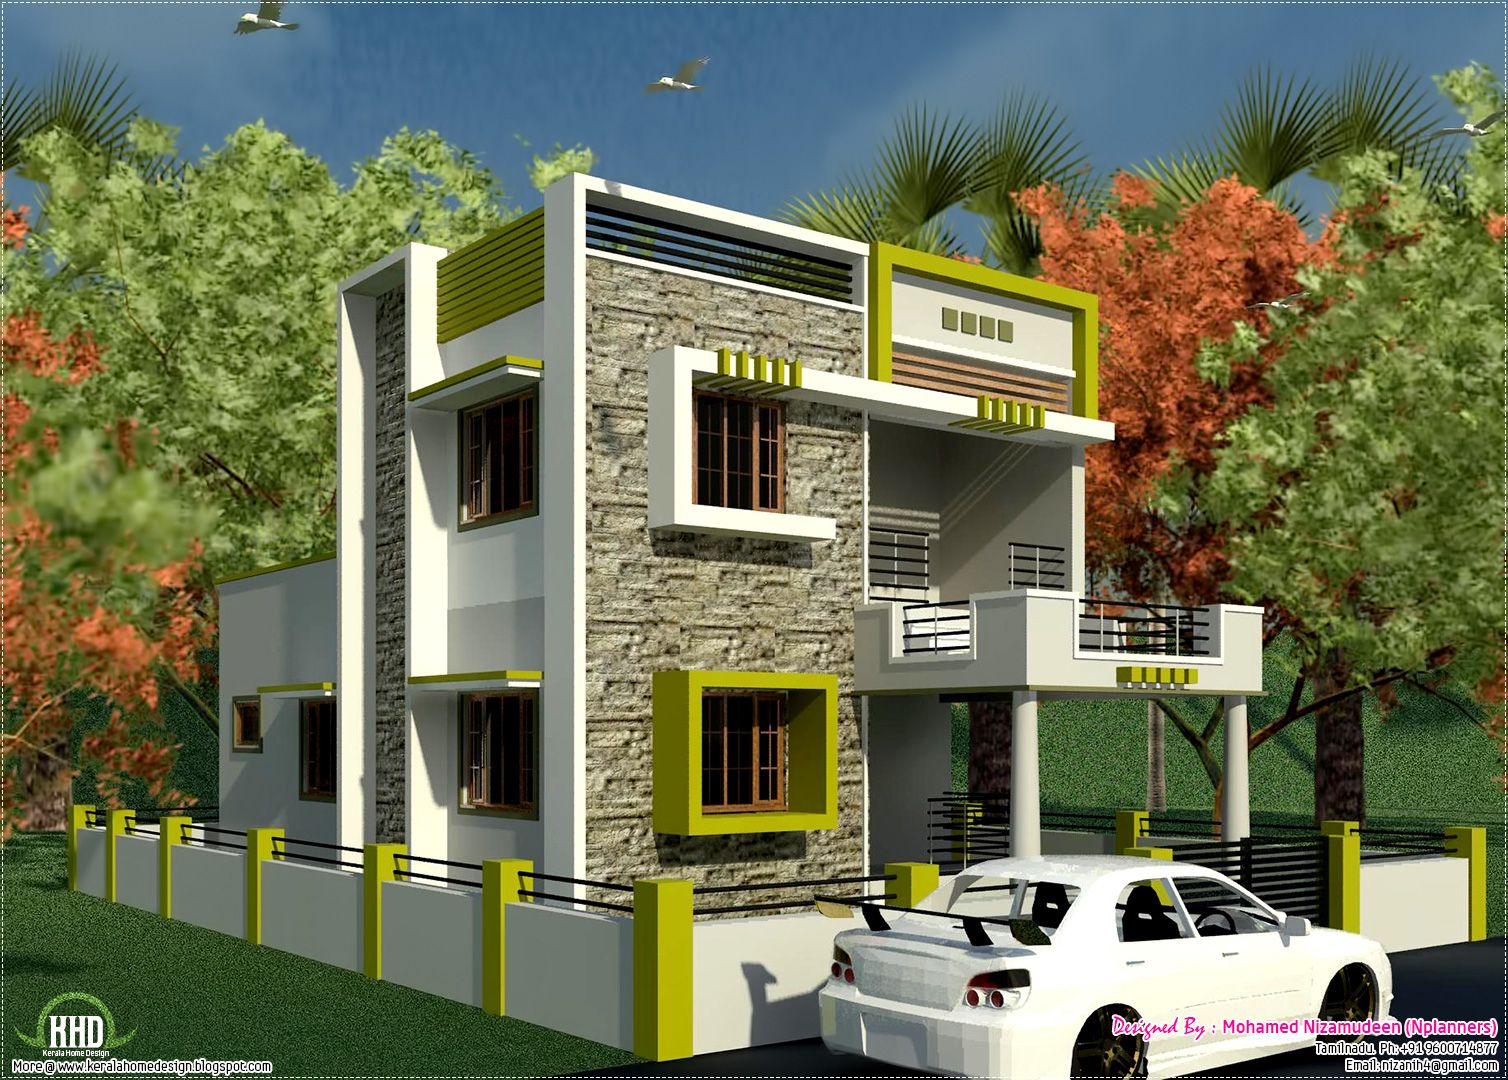 Small house with car park design tobfav com ideas for for Small house architecture